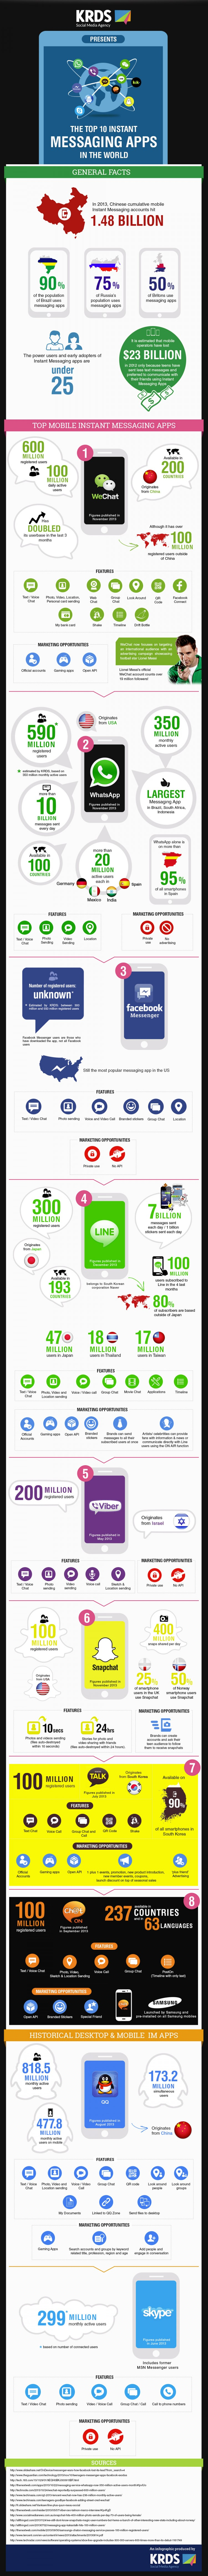 top-10-apps-instant-messaging-infographic